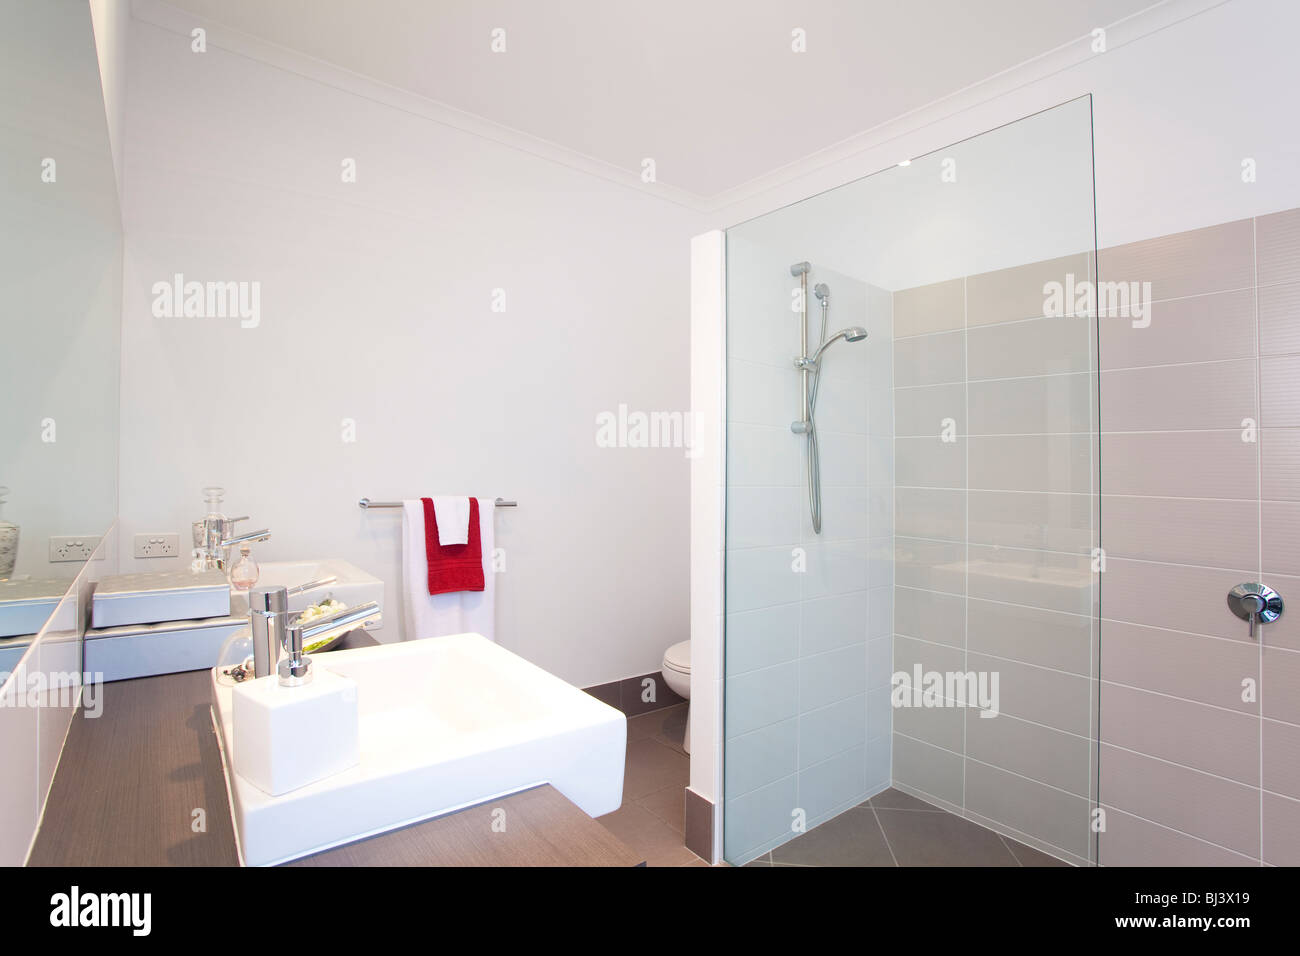 bathroom in modern townhouse - Stock Image